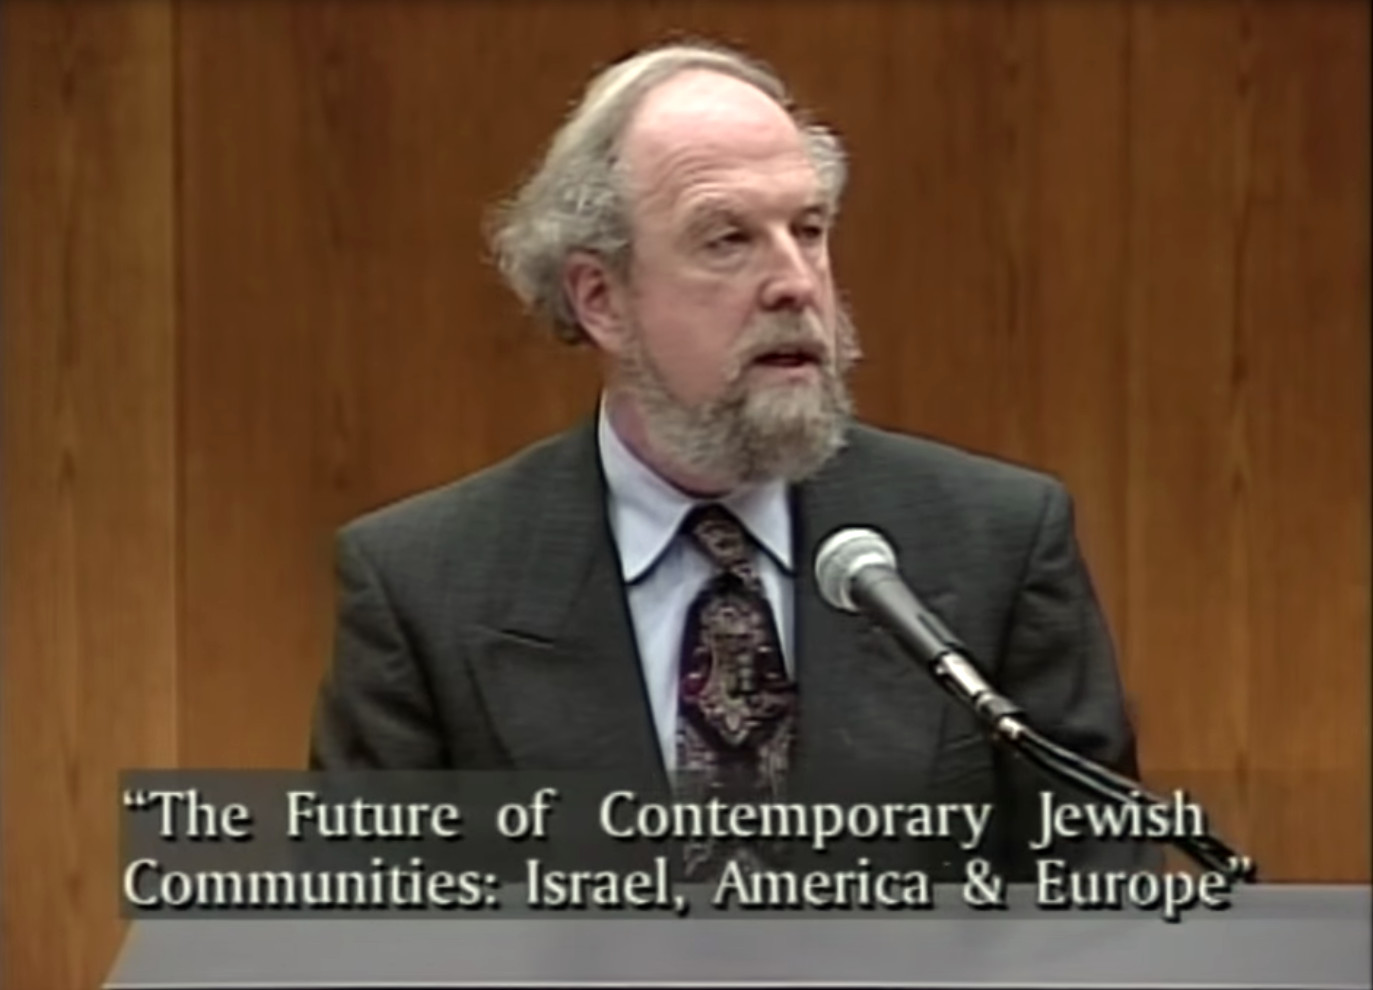 Calvin Goldscheider: Studying the Jewish Future